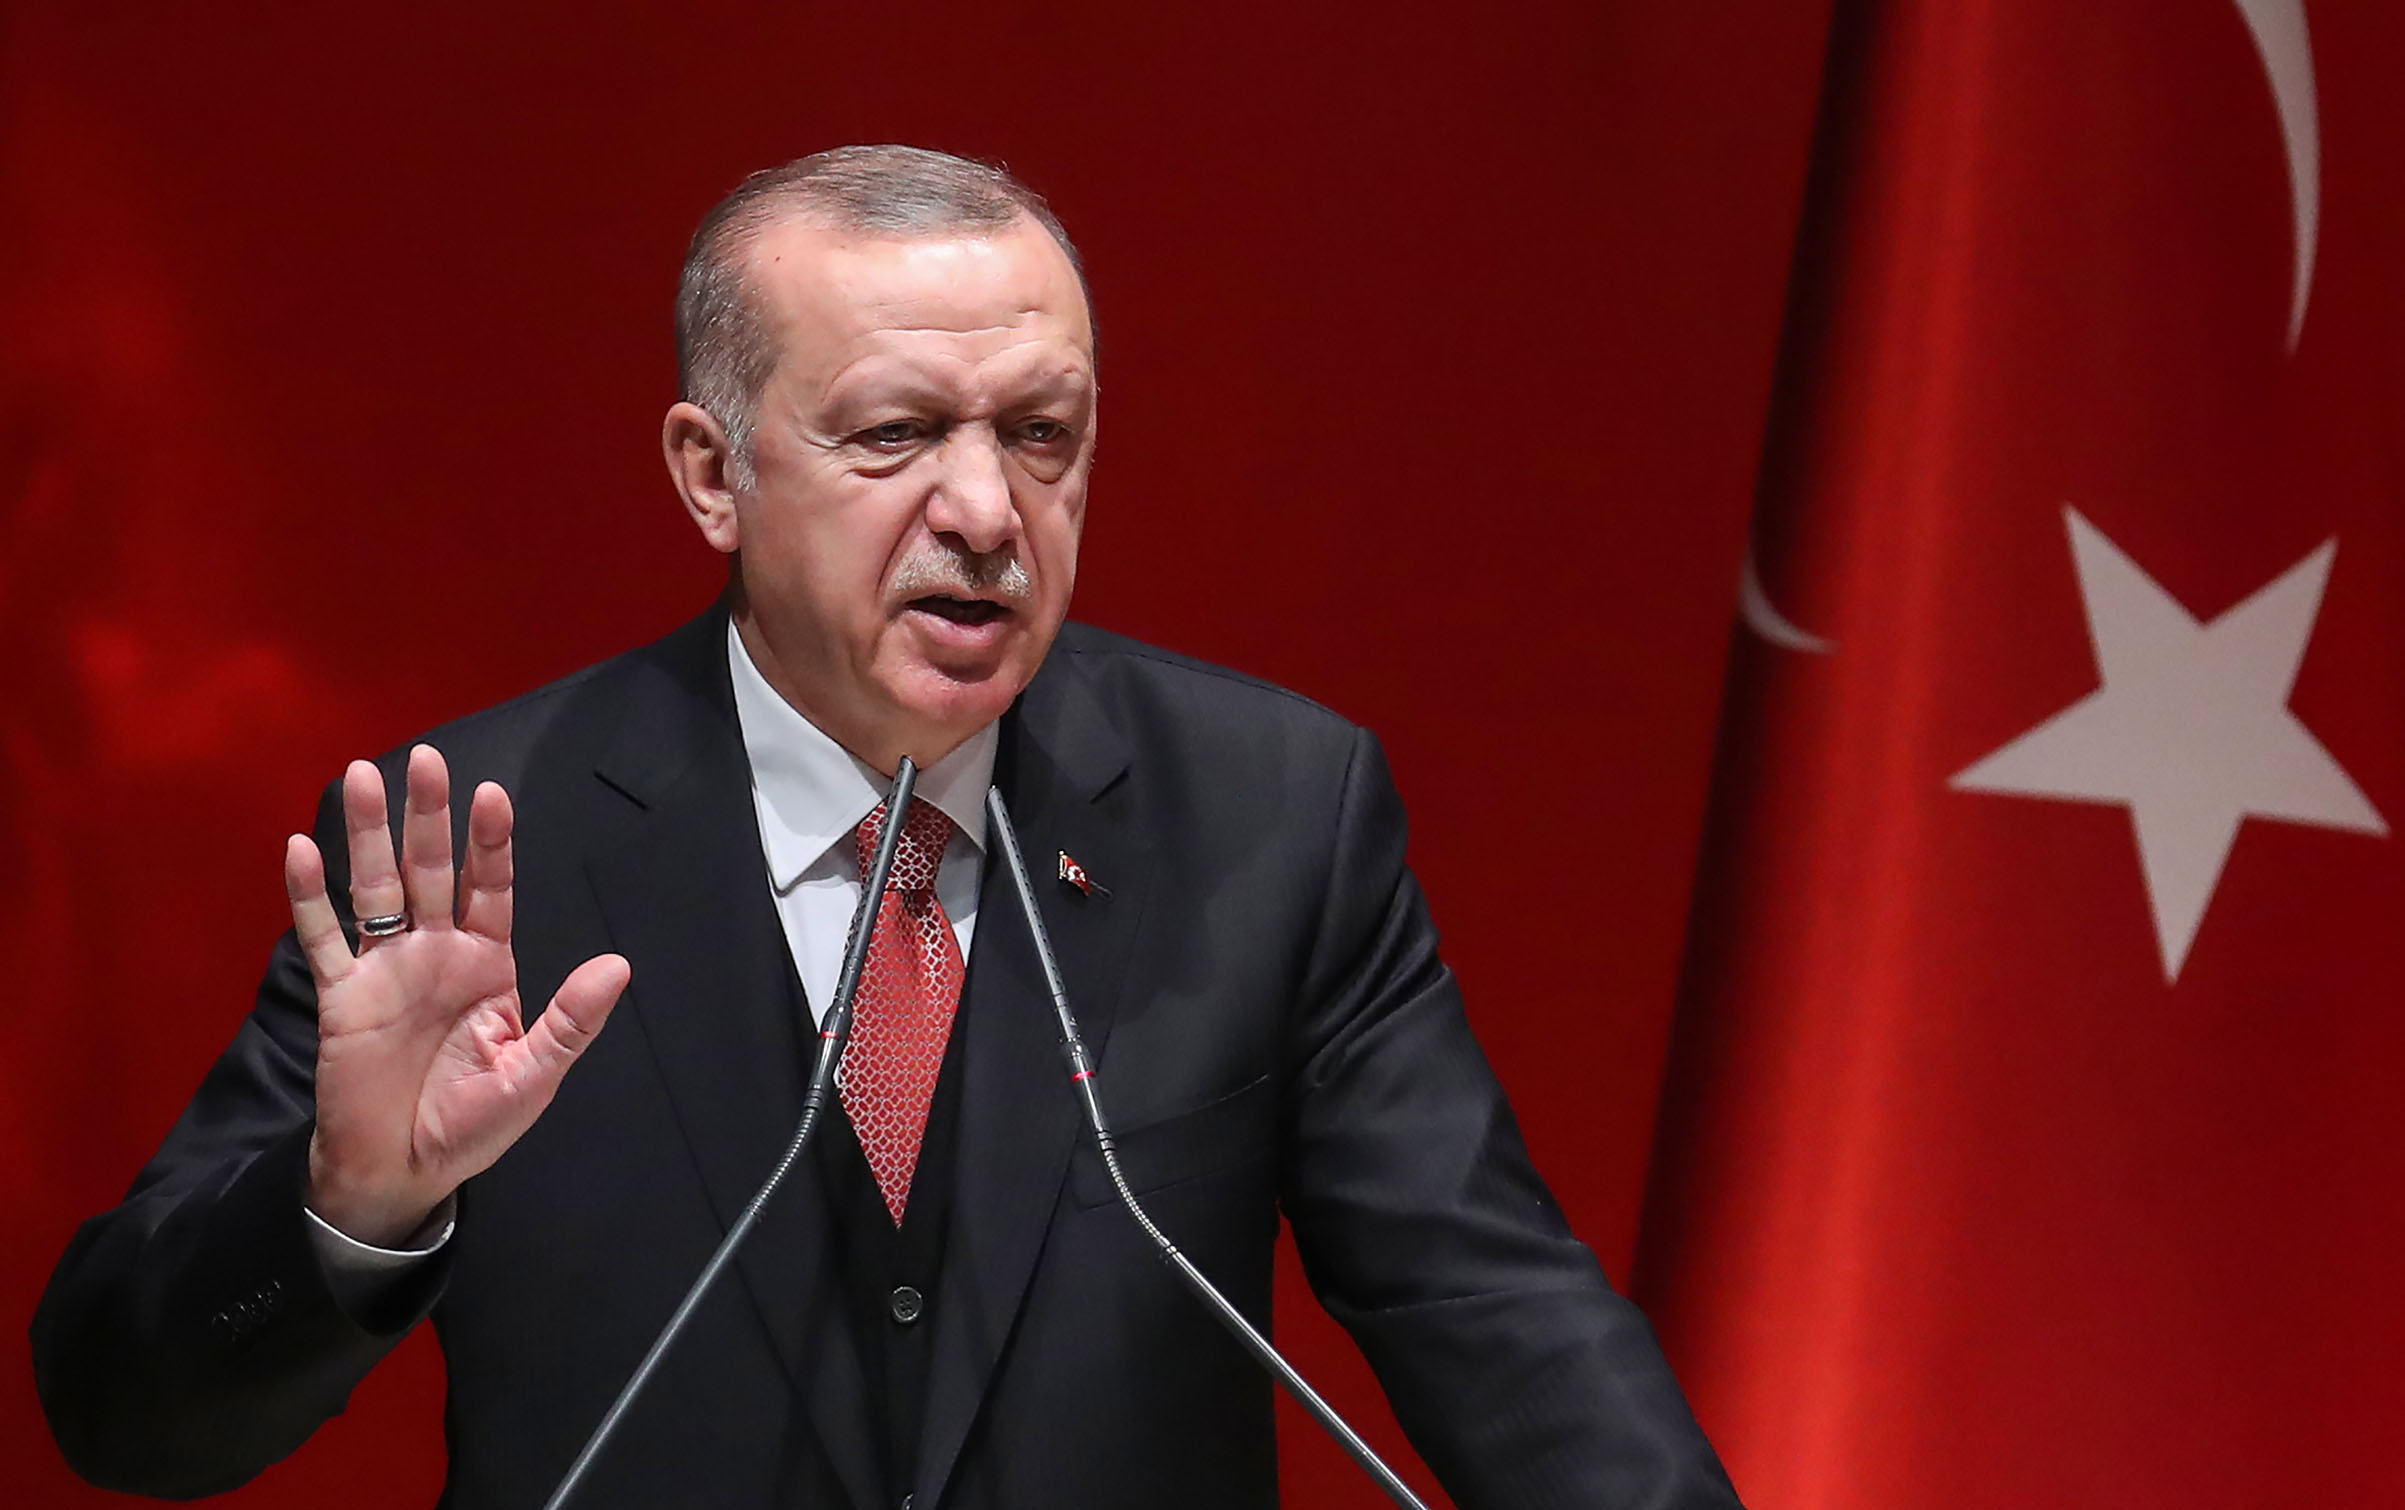 Turkish President Tayyip Erdogan addresses election officials on Jan. 29